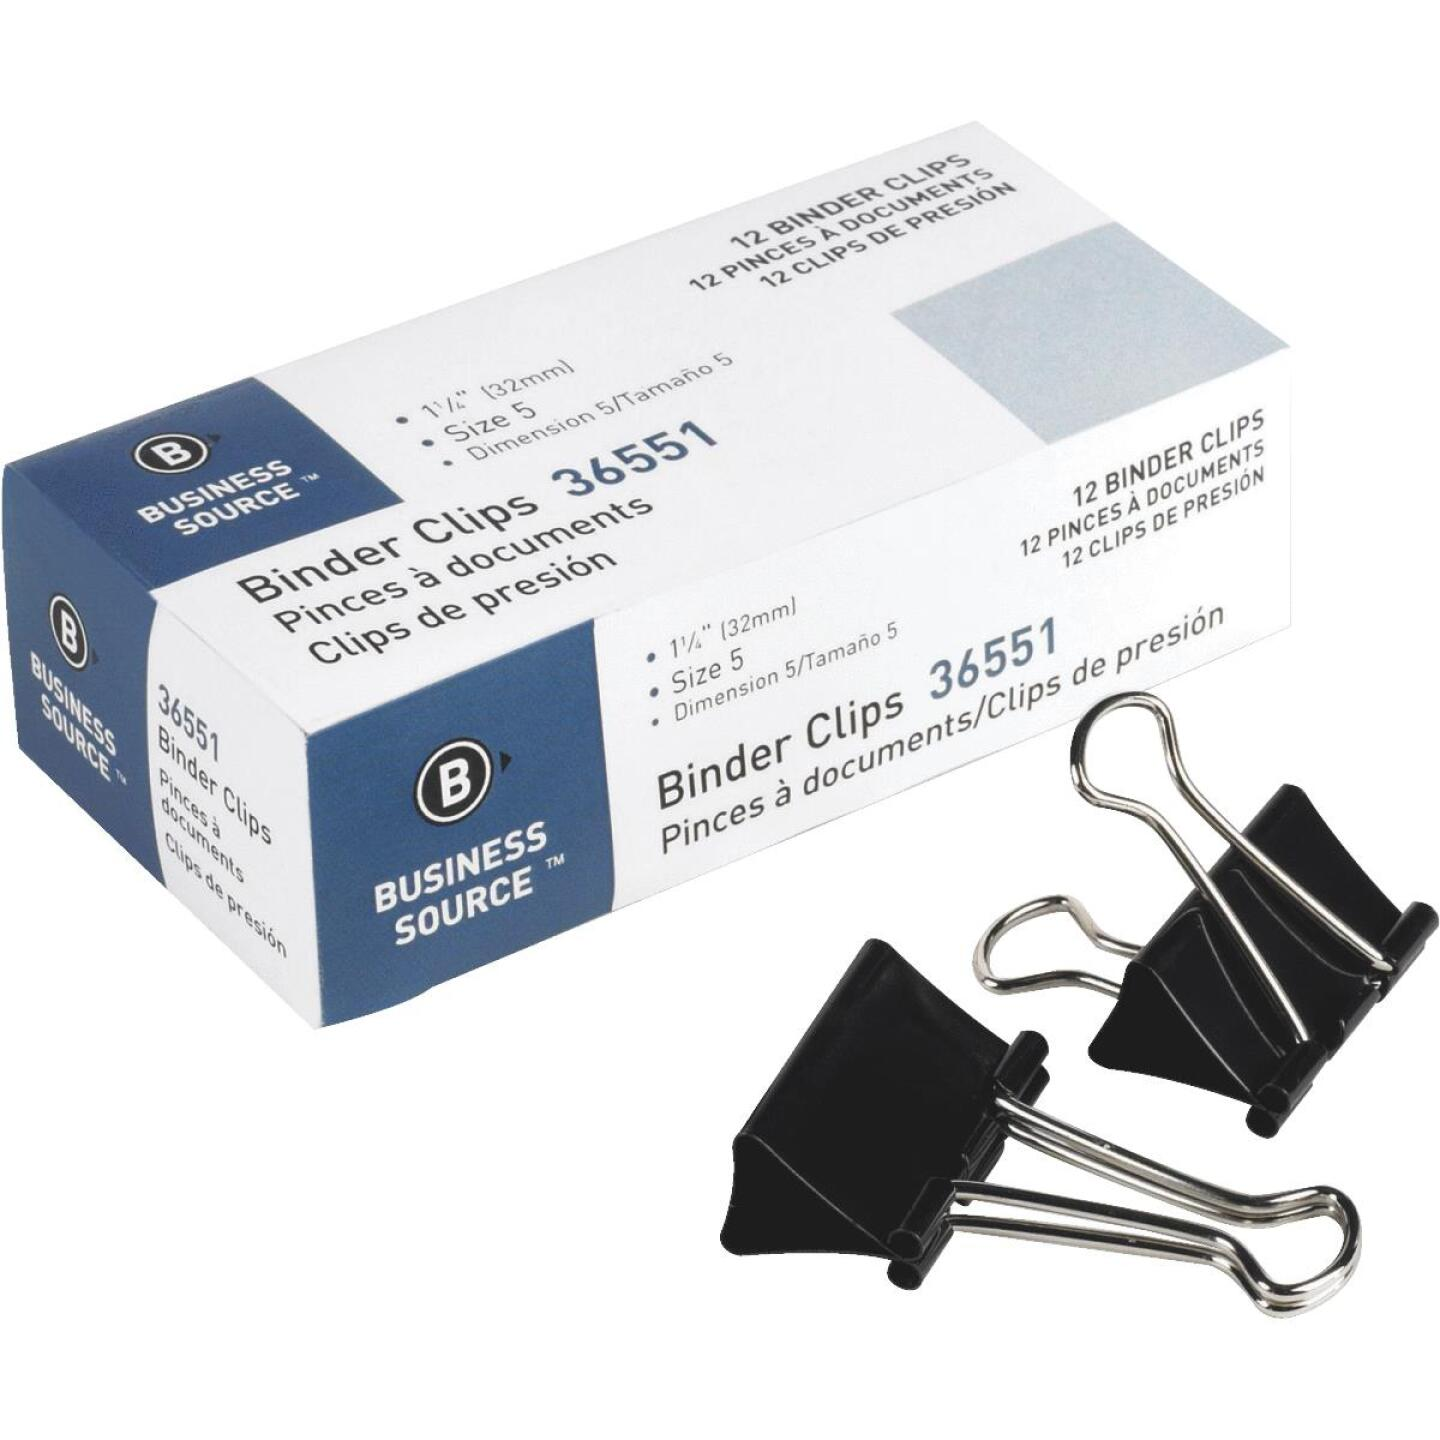 Business Source 1.25 In. W. Medium Binder Clips (12-Pack) Image 1